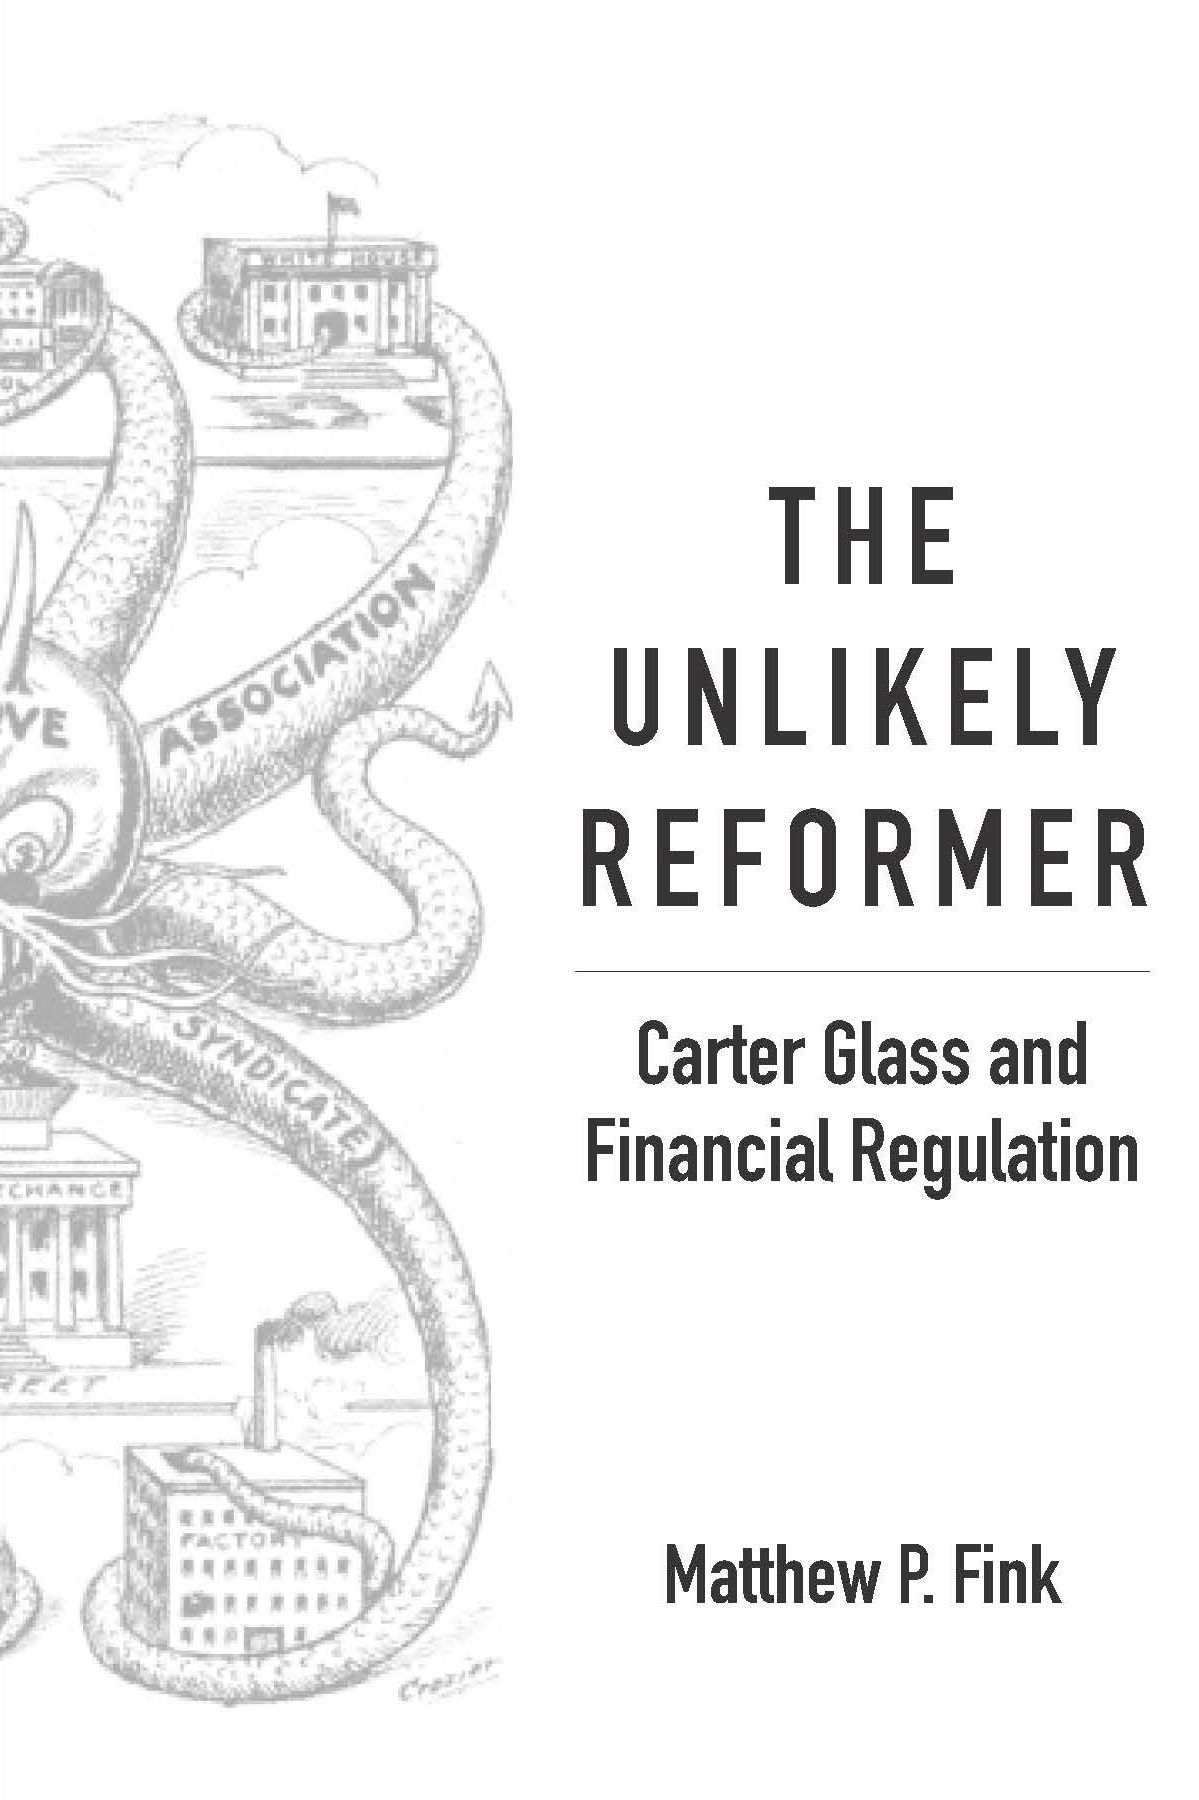 The Unlikely Reformer: Carter Glass and Financial Regulation